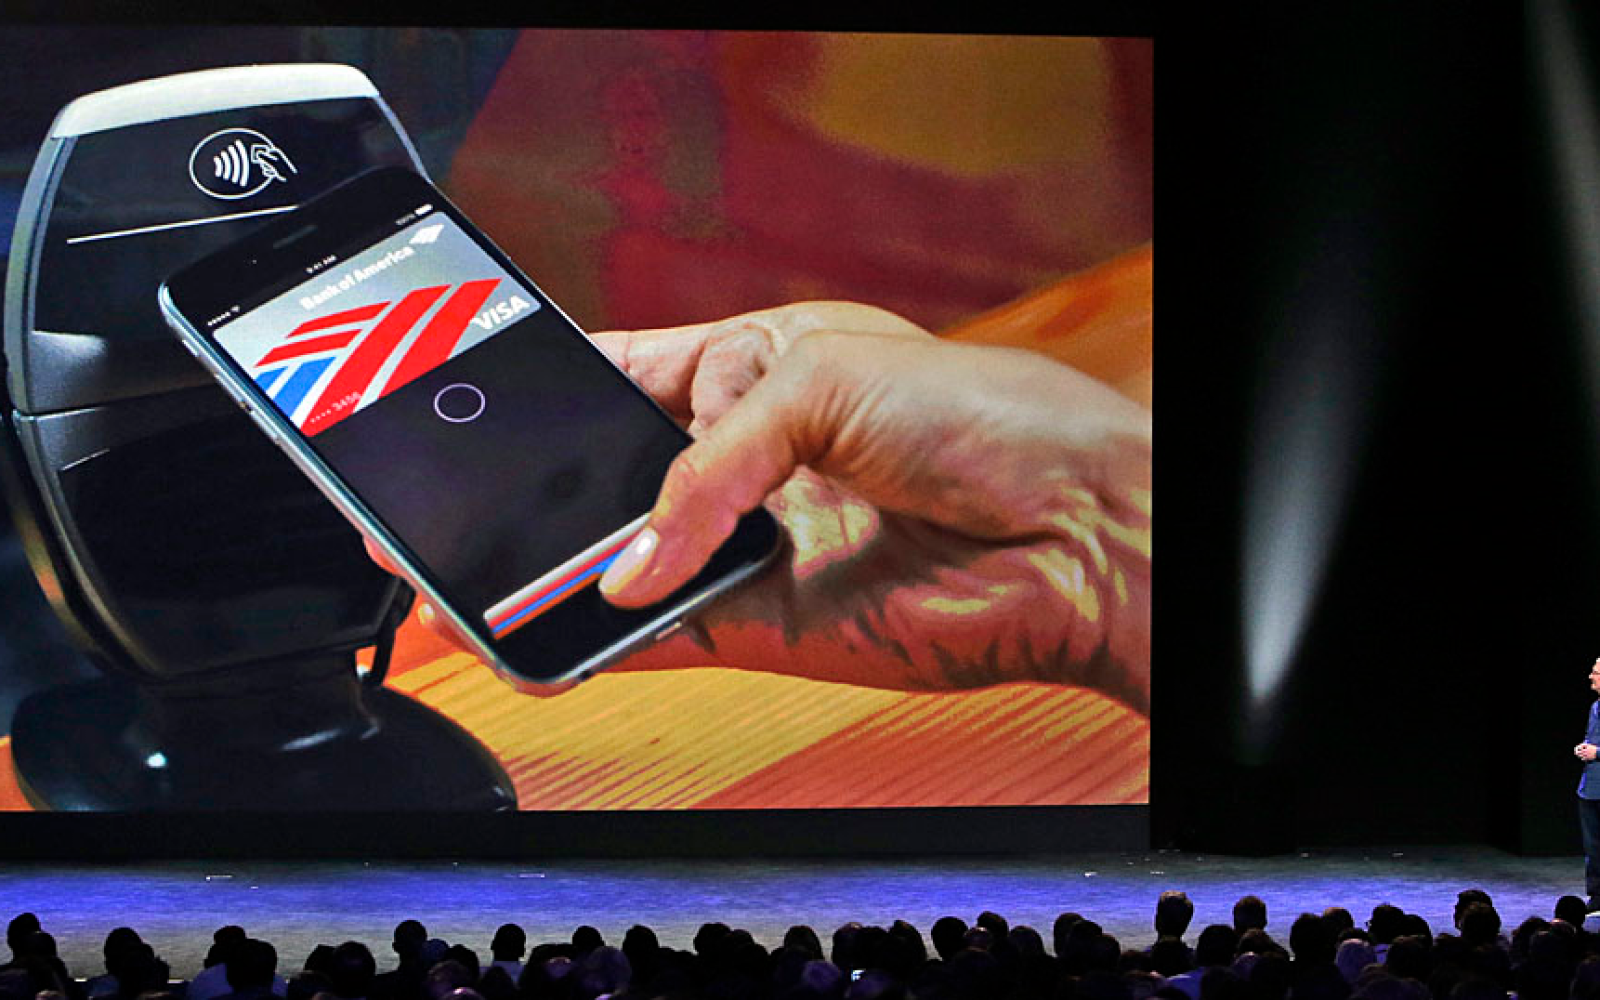 Bank of America announces 1.1 million cards using Apple Pay, new grocery stores add support